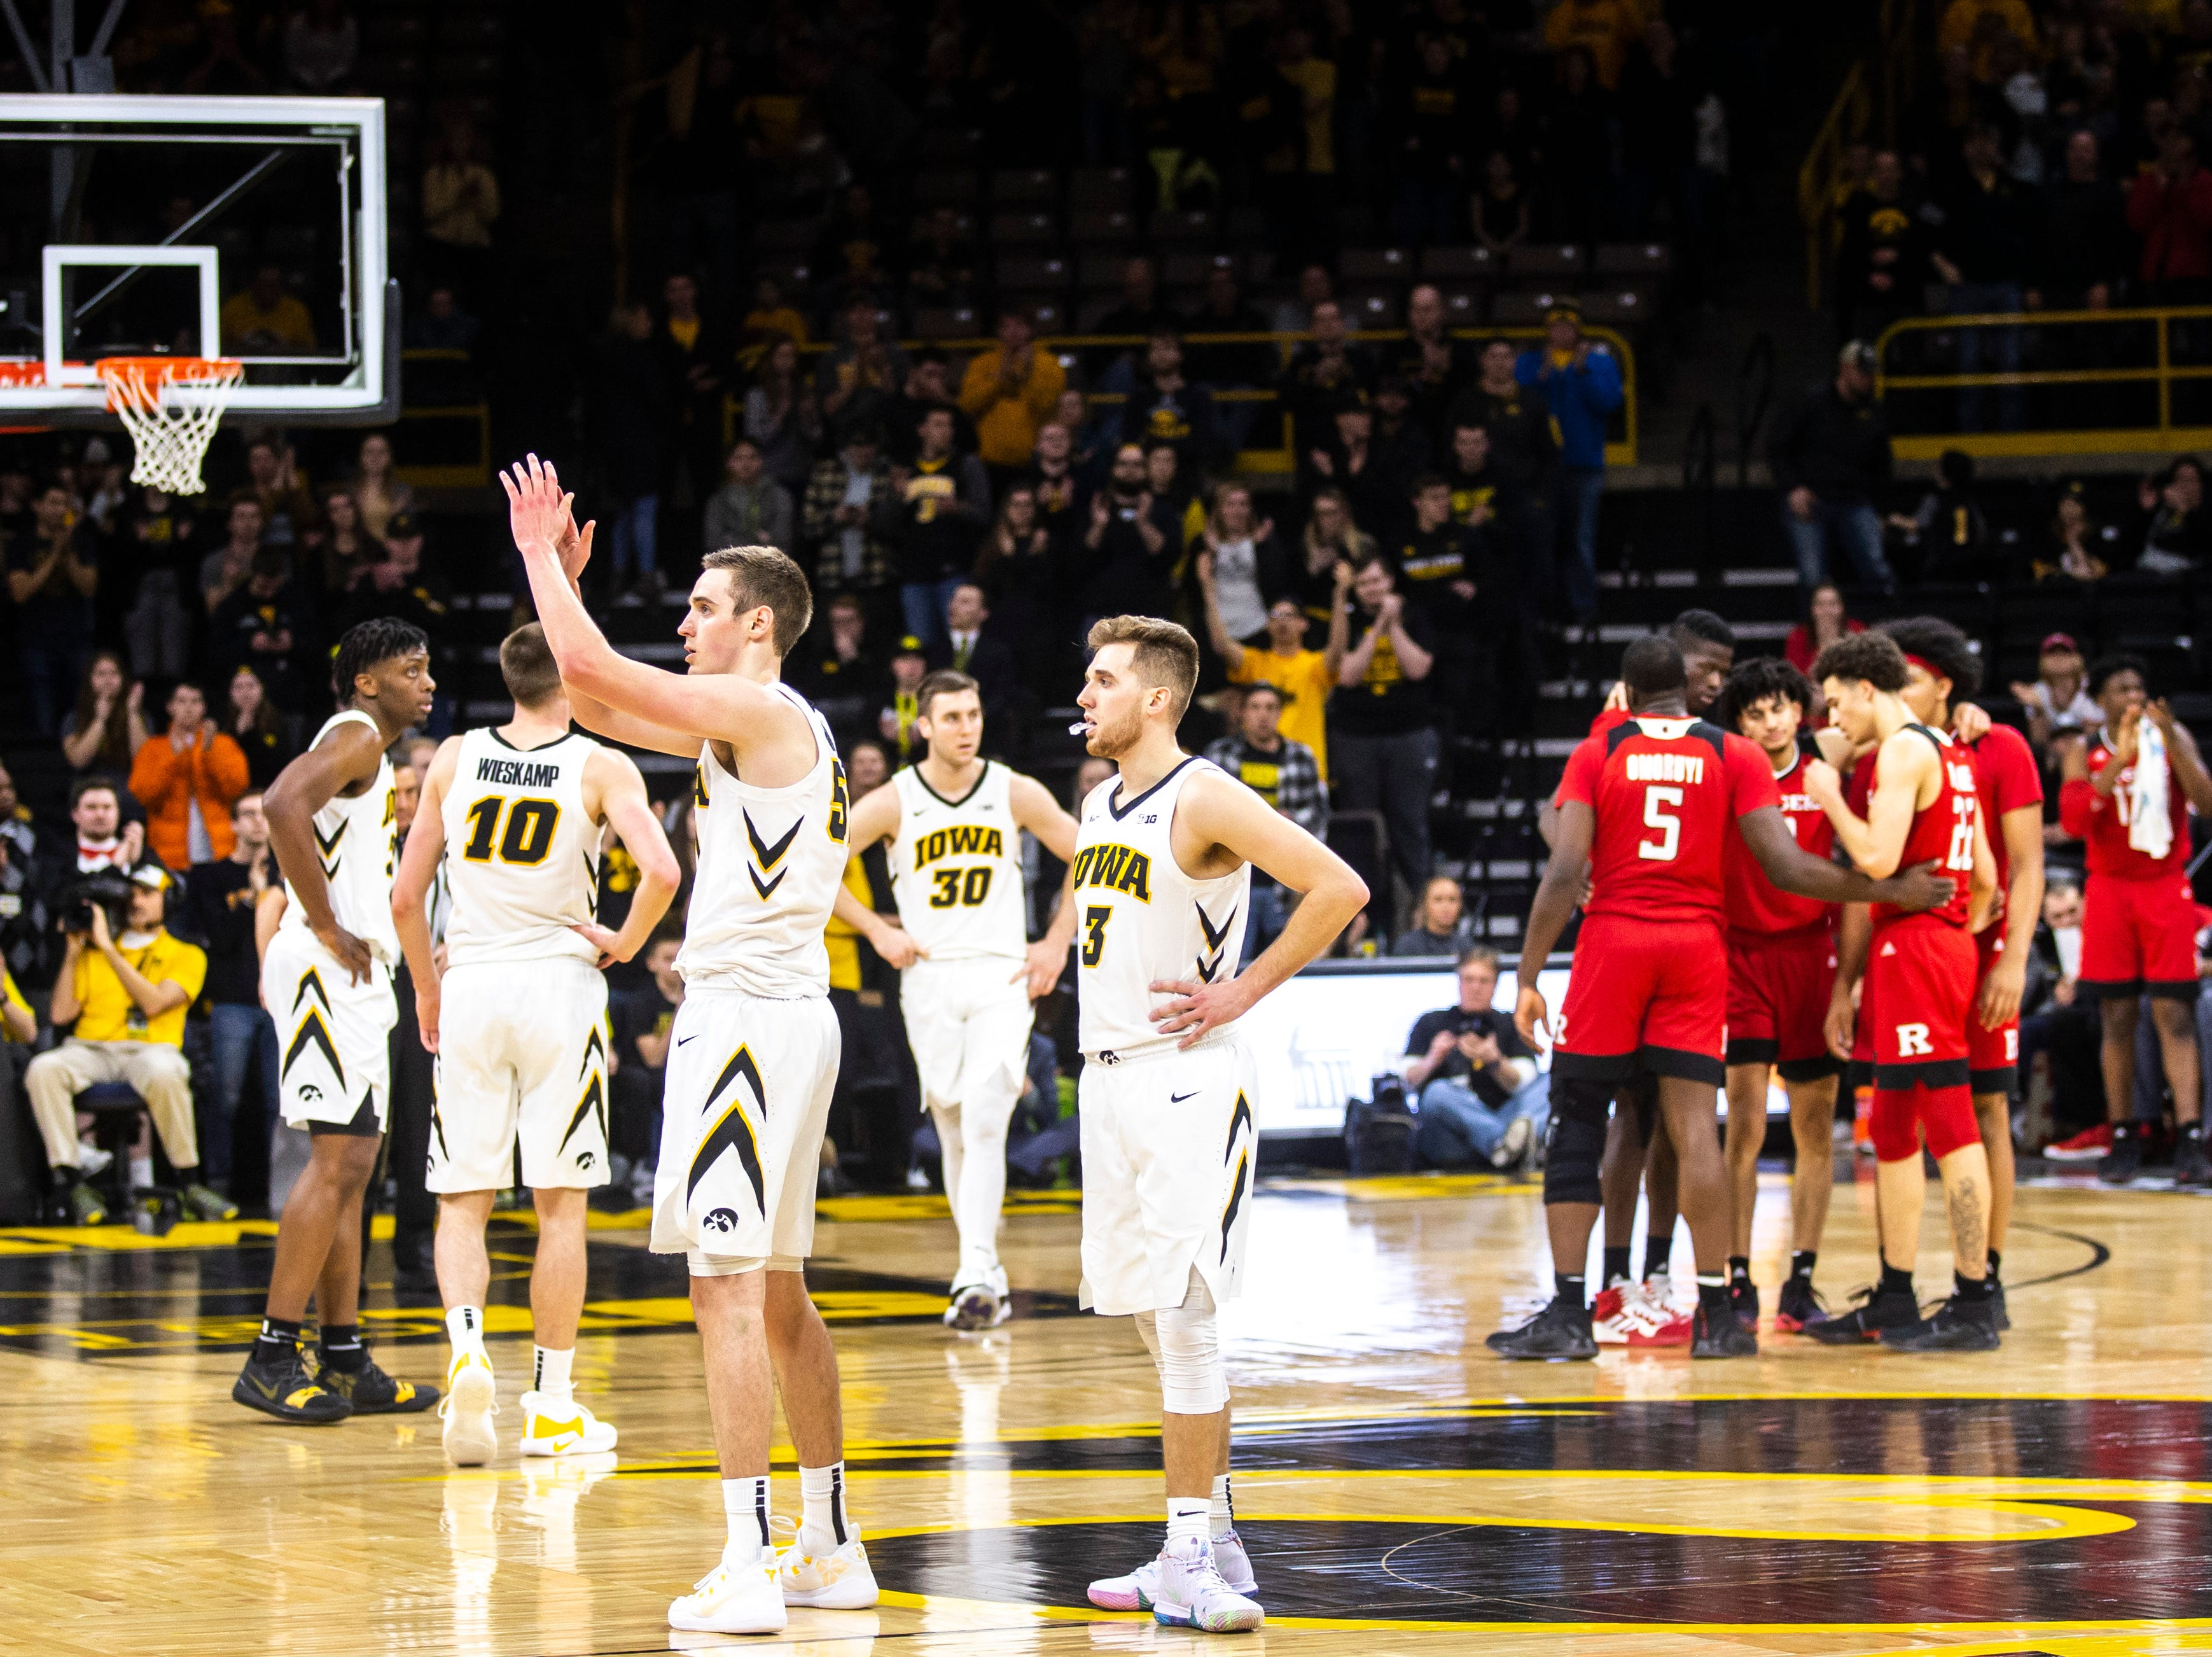 Iowa forward Nicholas Baer (51) thanks the crowd during a NCAA Big Ten Conference men's basketball game on Saturday, March 2, 2019, at Carver-Hawkeye Arena in Iowa City, Iowa.